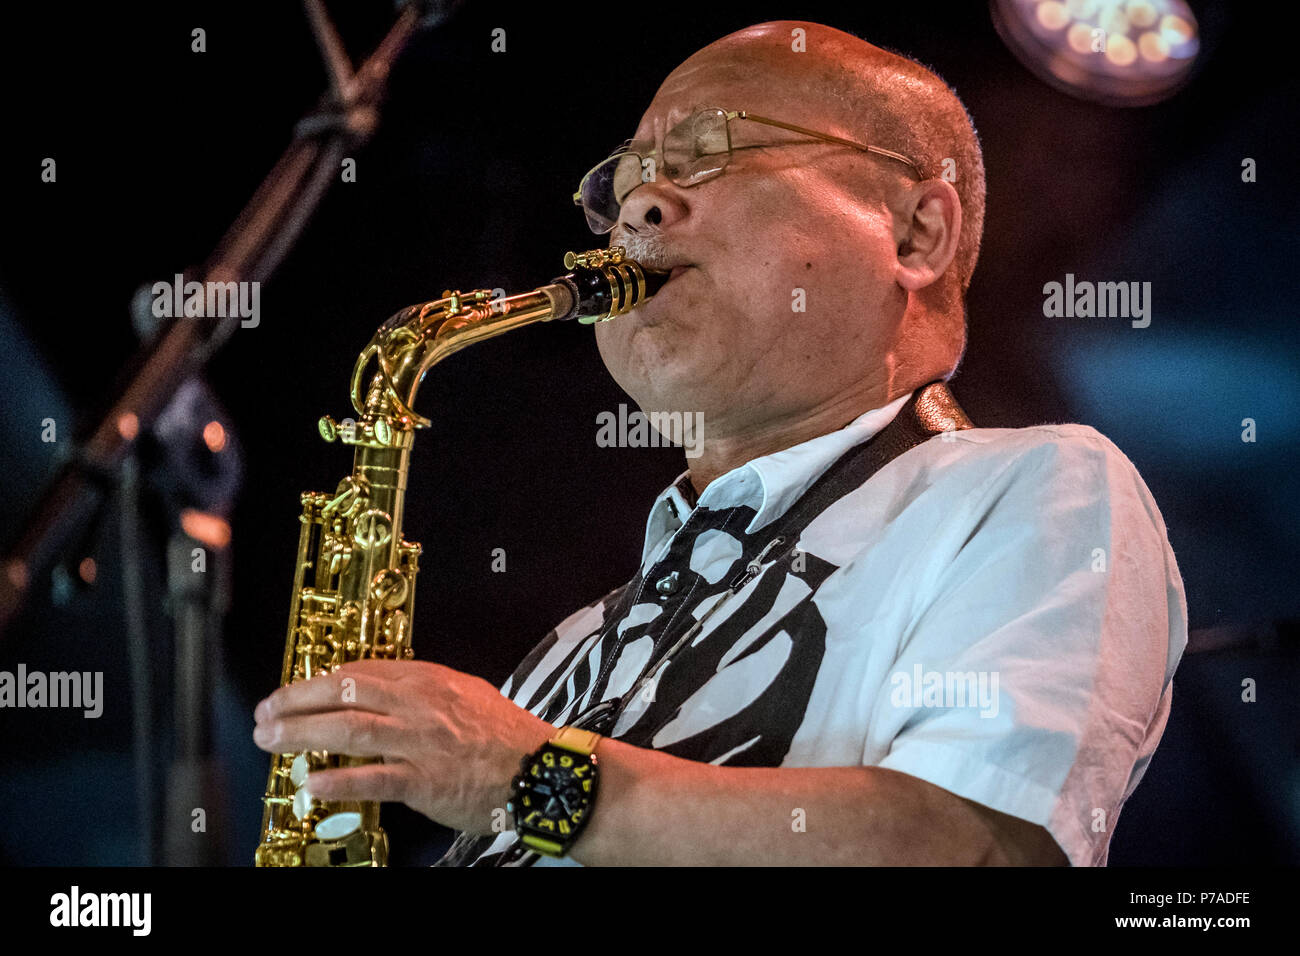 Roskilde, Denmark. 4th July, 2018. The international jazz band Paal Nilssen-Love's Japan Free Jazz and Noise performs a live concert during the Danish music festival Roskilde Festival 2018. Here Japanese saxophonist Akira Sakata is seen live on stage. (Photo credit: Gonzales Photo - Kim M. Leland). Credit: Gonzales Photo/Alamy Live News - Stock Image